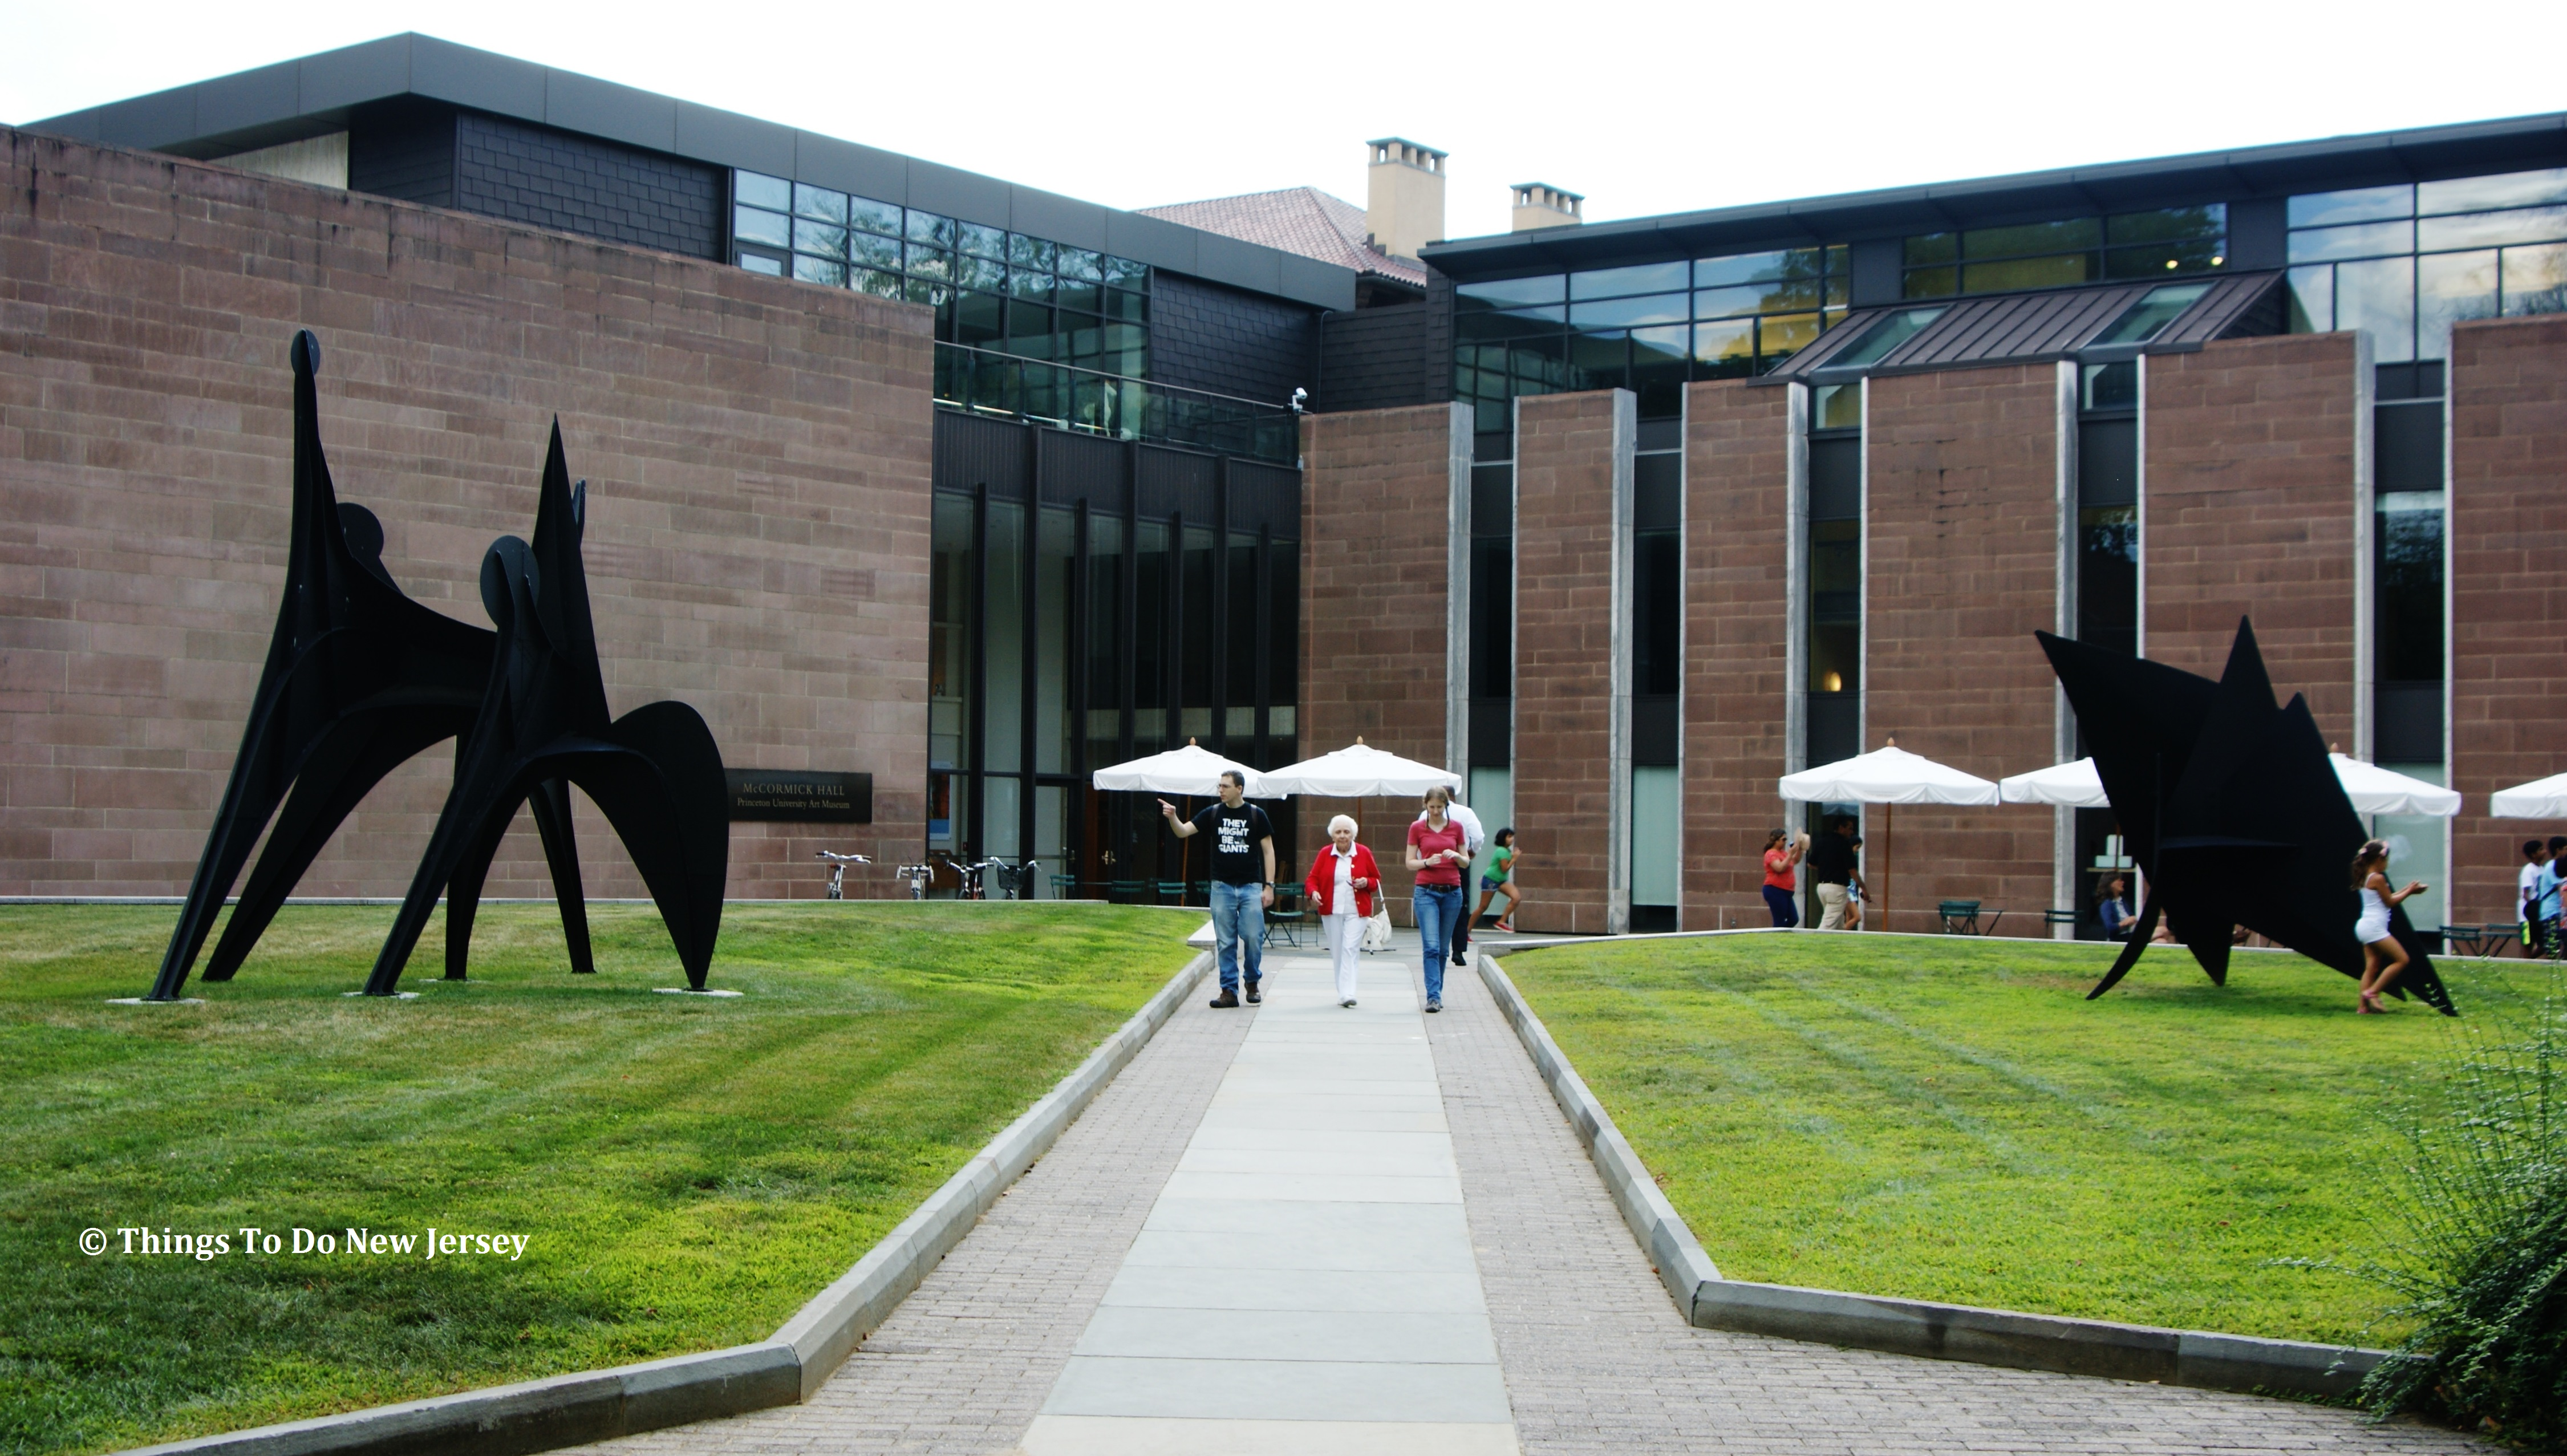 Things To Do In New Jersey Princeton University Art